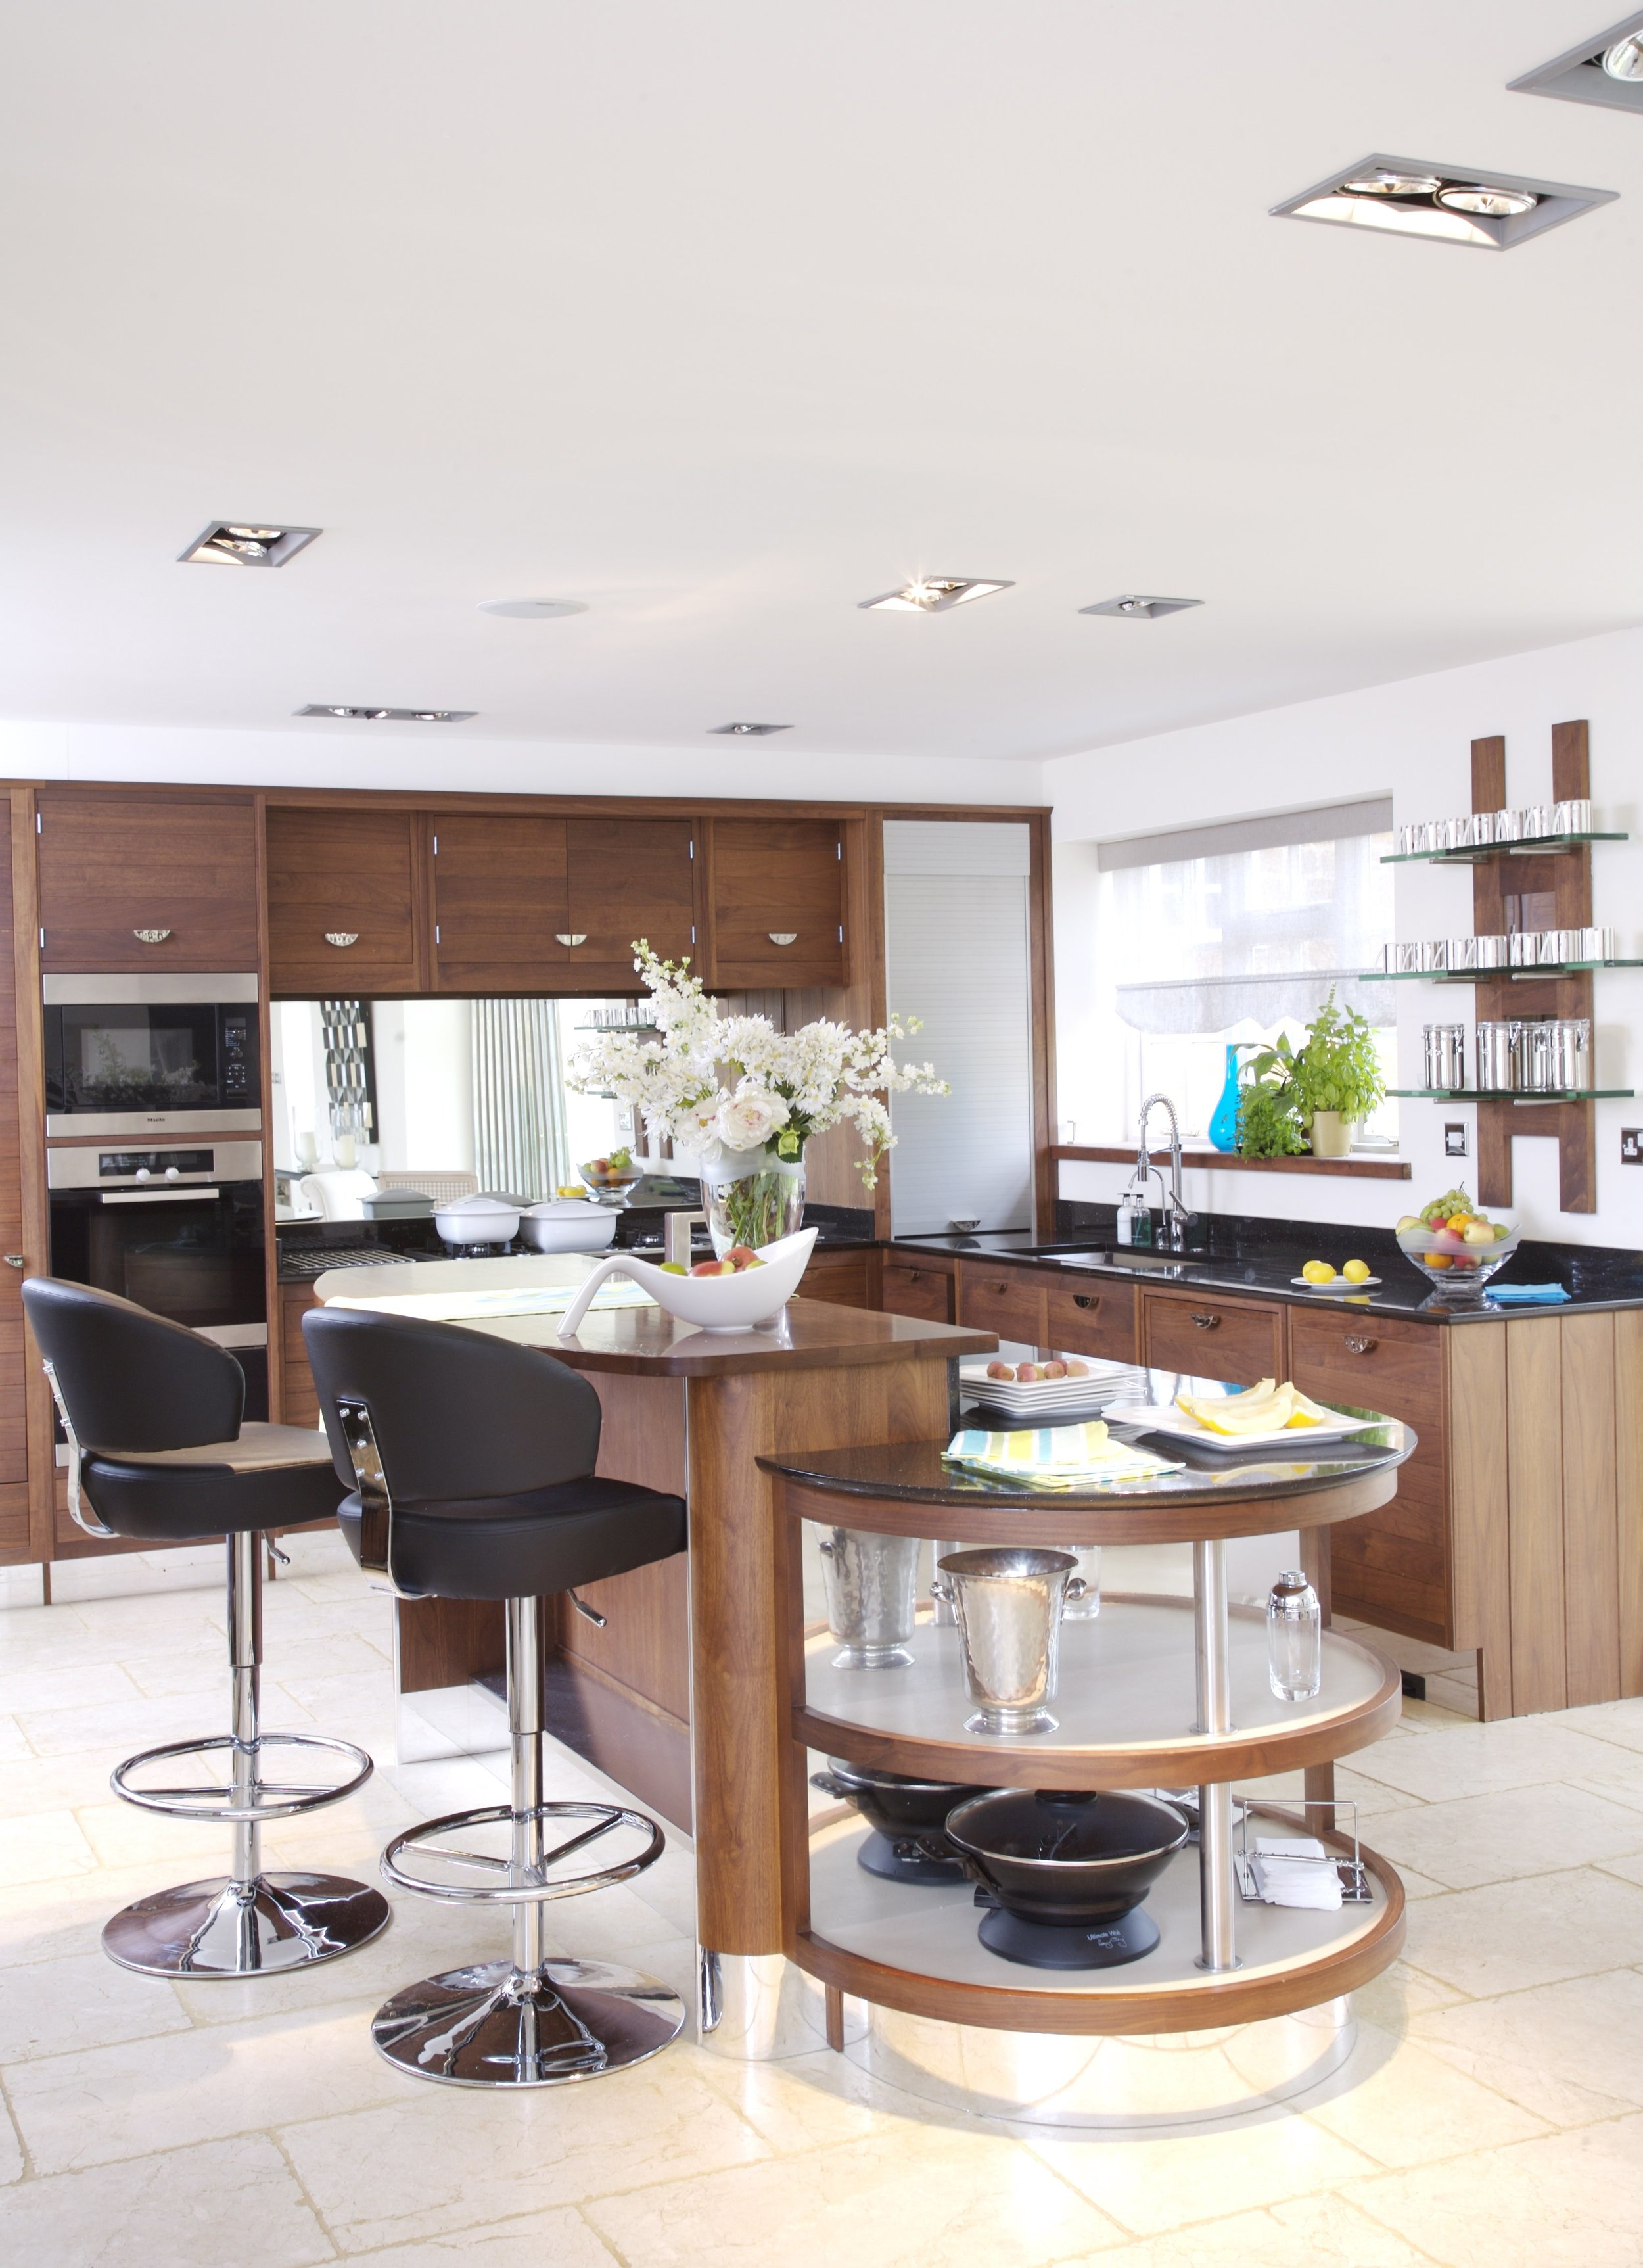 Open plan kitchen at Beggars Barn